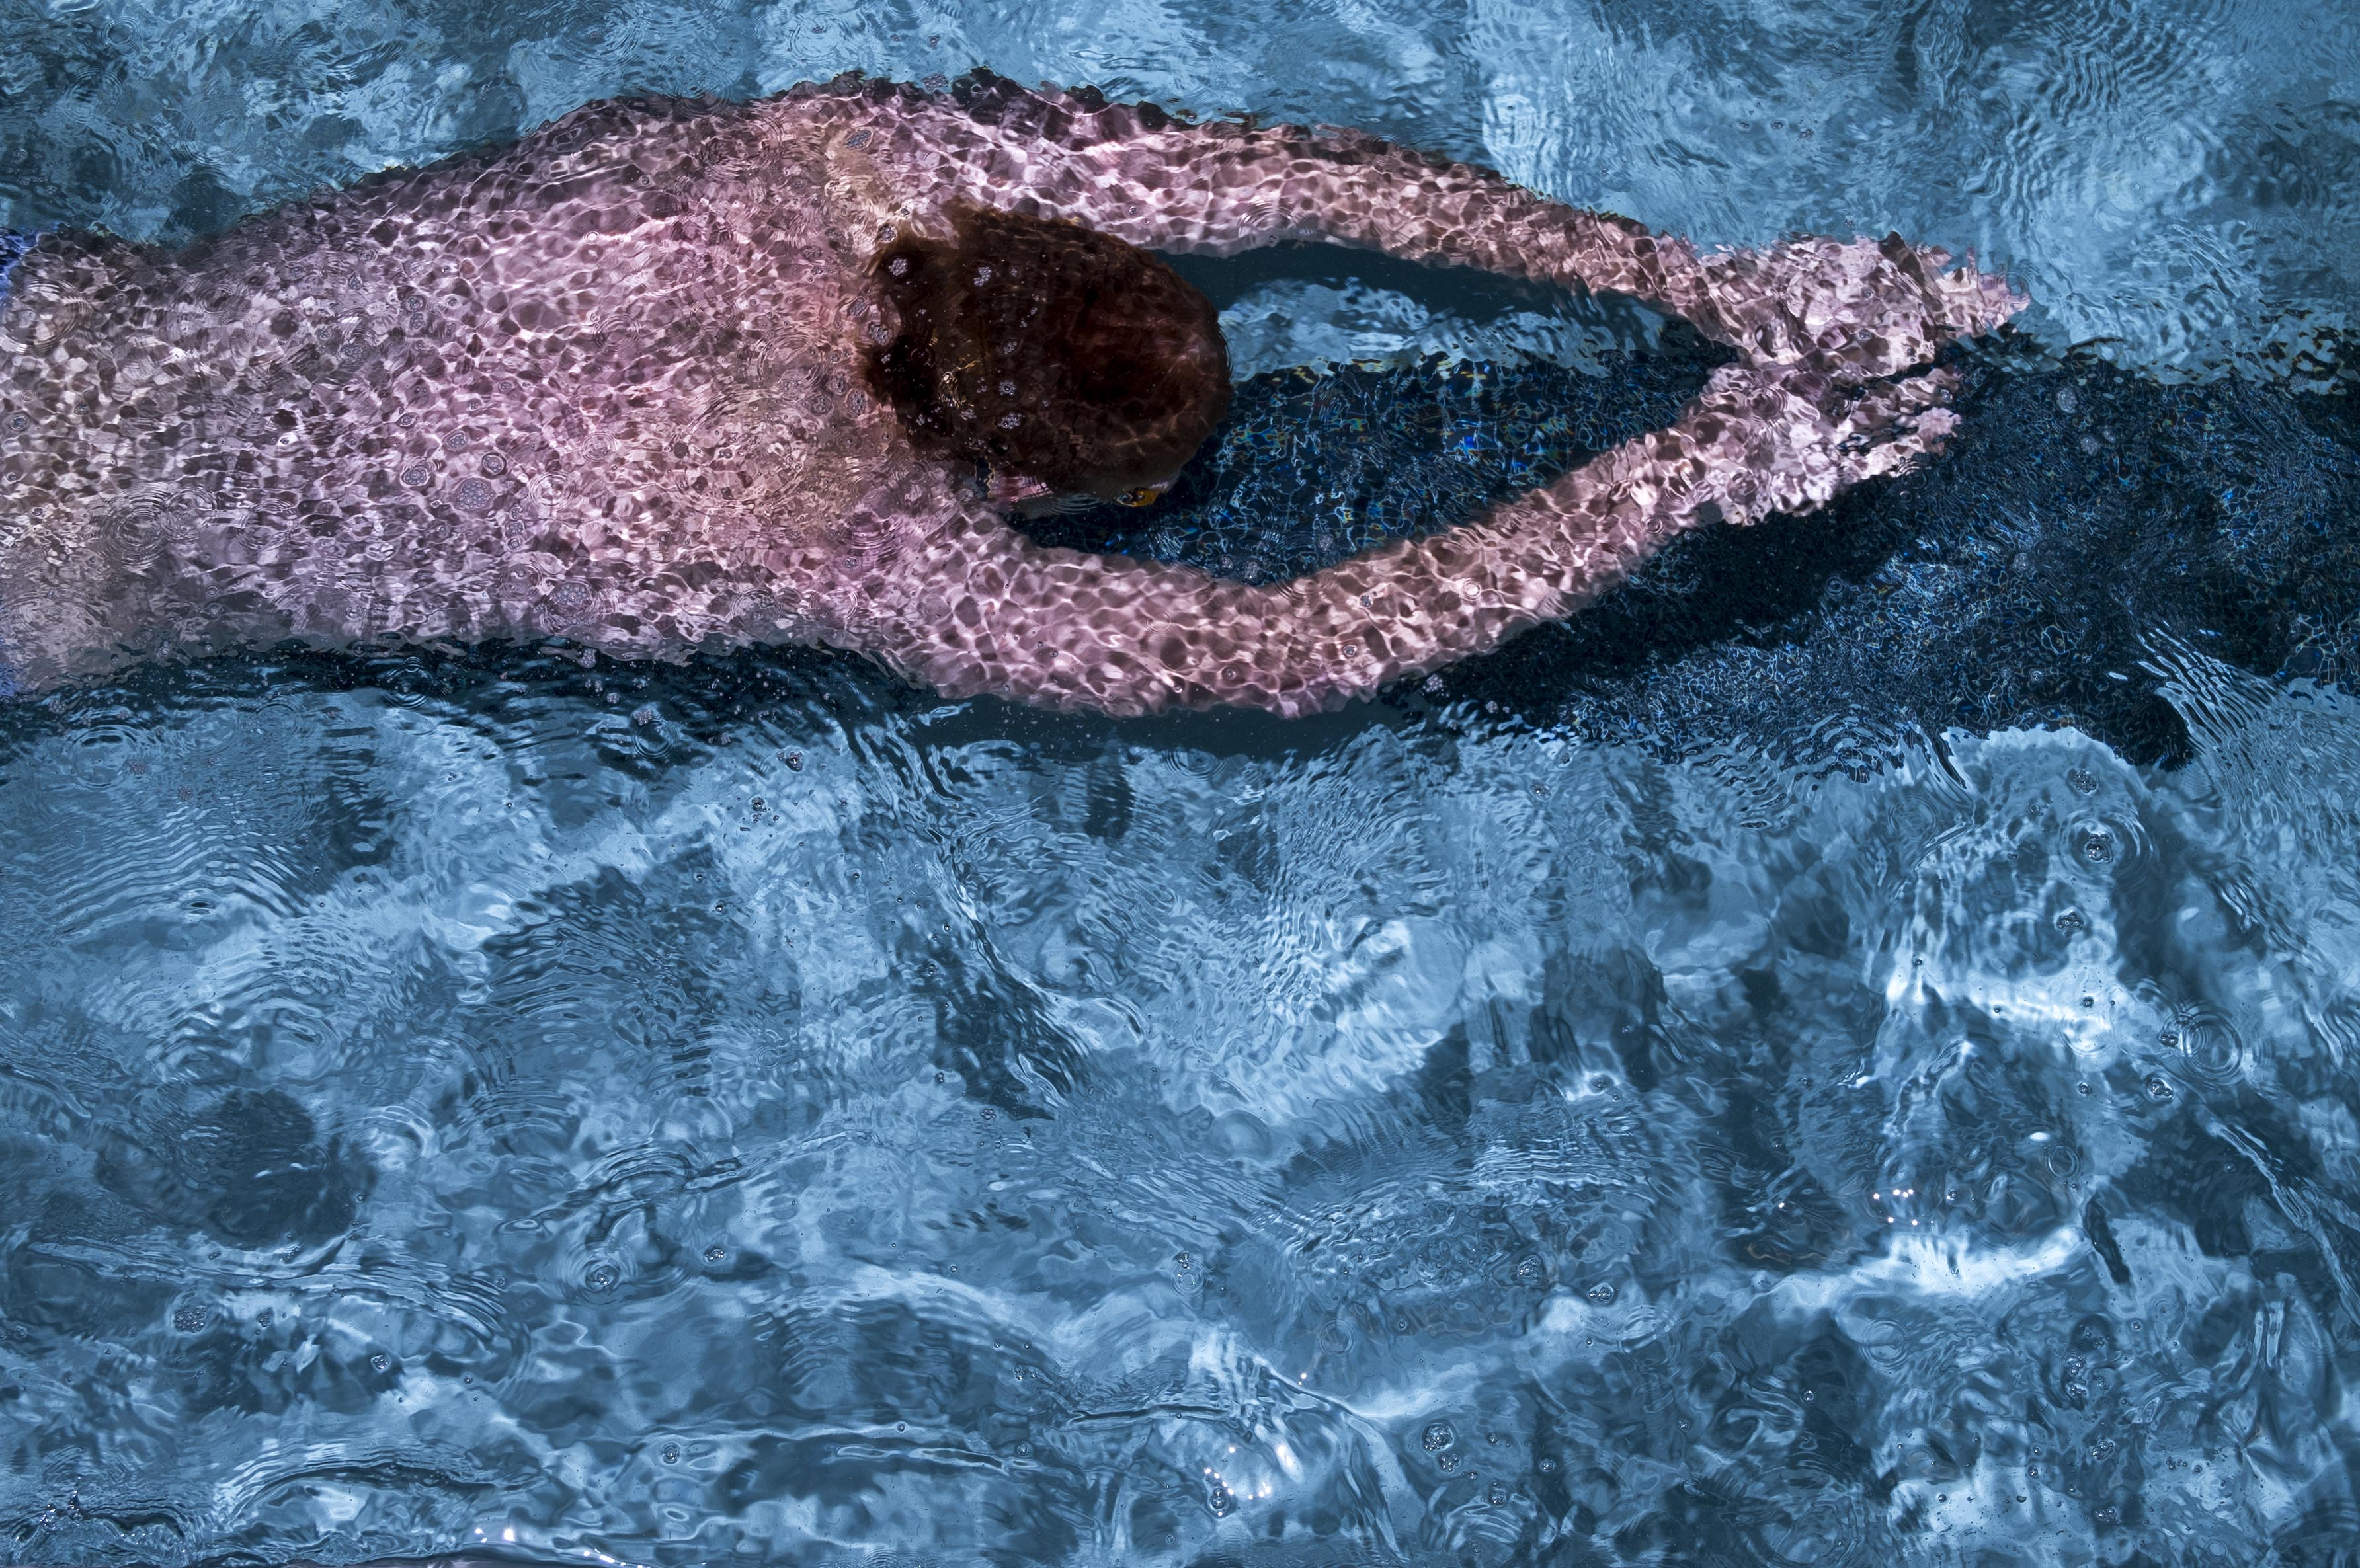 A photograph of a man in a speedo swimming in a pool with his arms in front of him, shot from above.